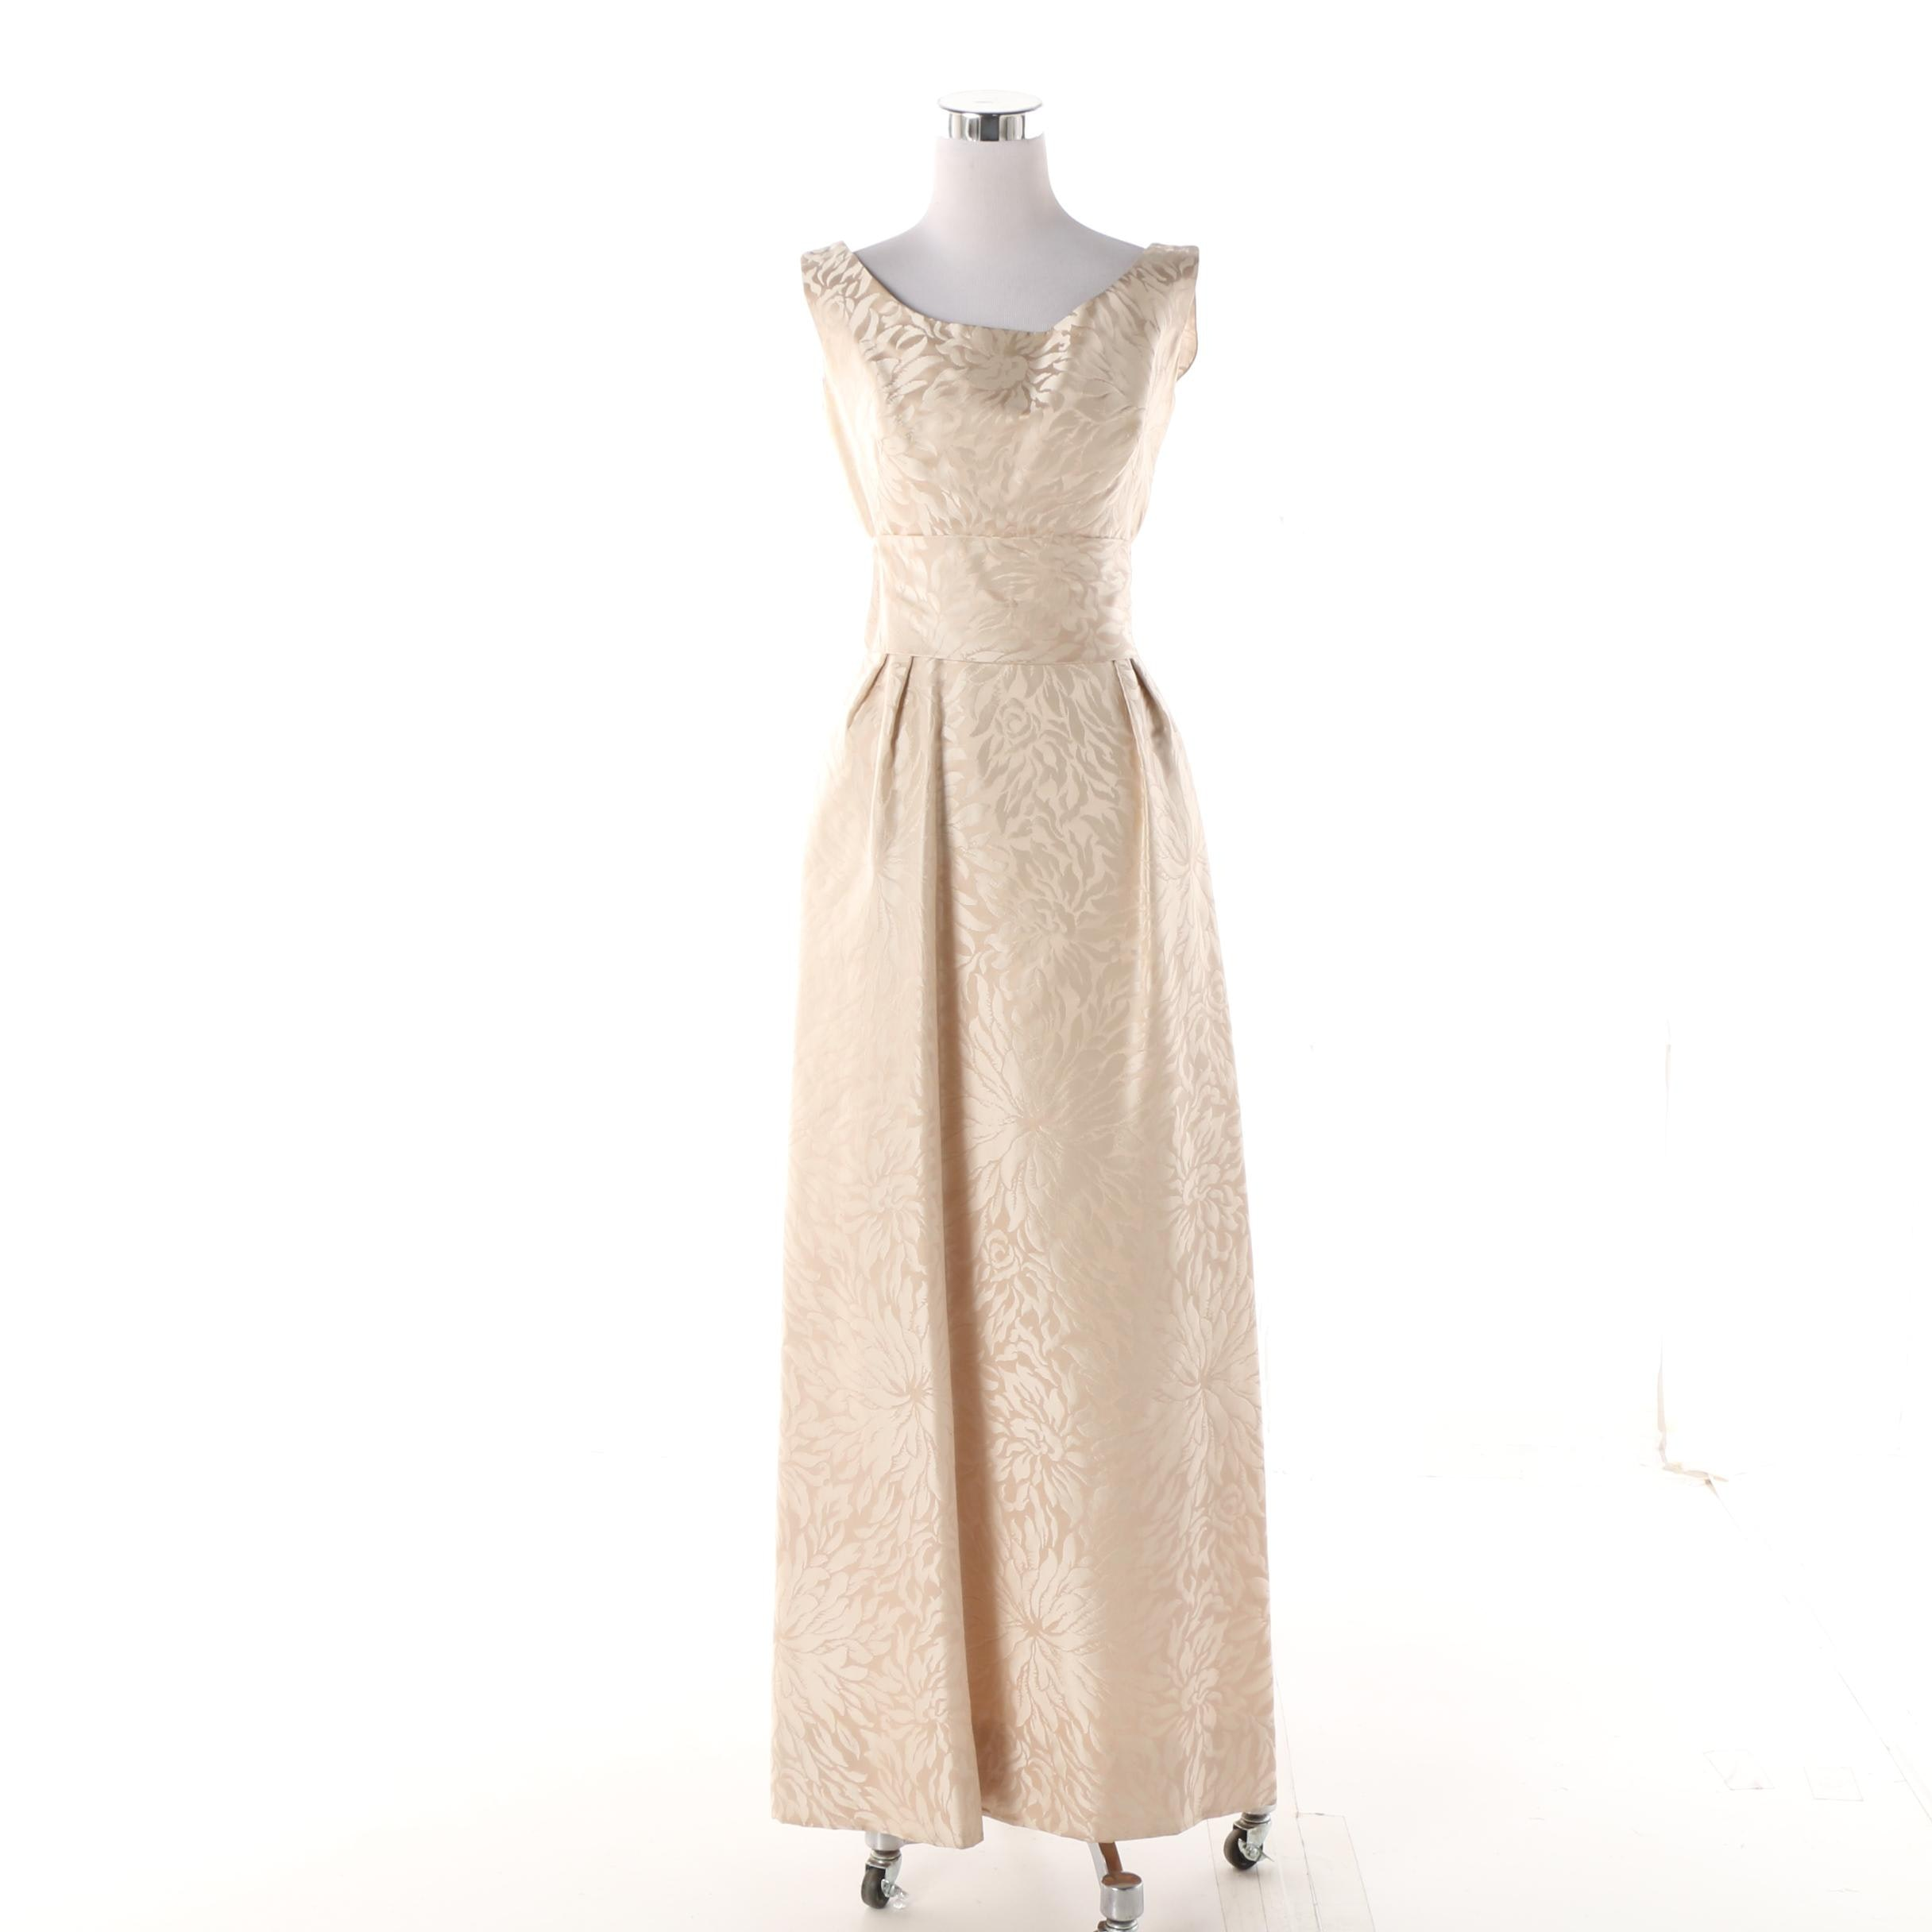 1960s I. Magnin Champagne Jacquard Chrysanthemum Sleeveless Gown with Bow Belt